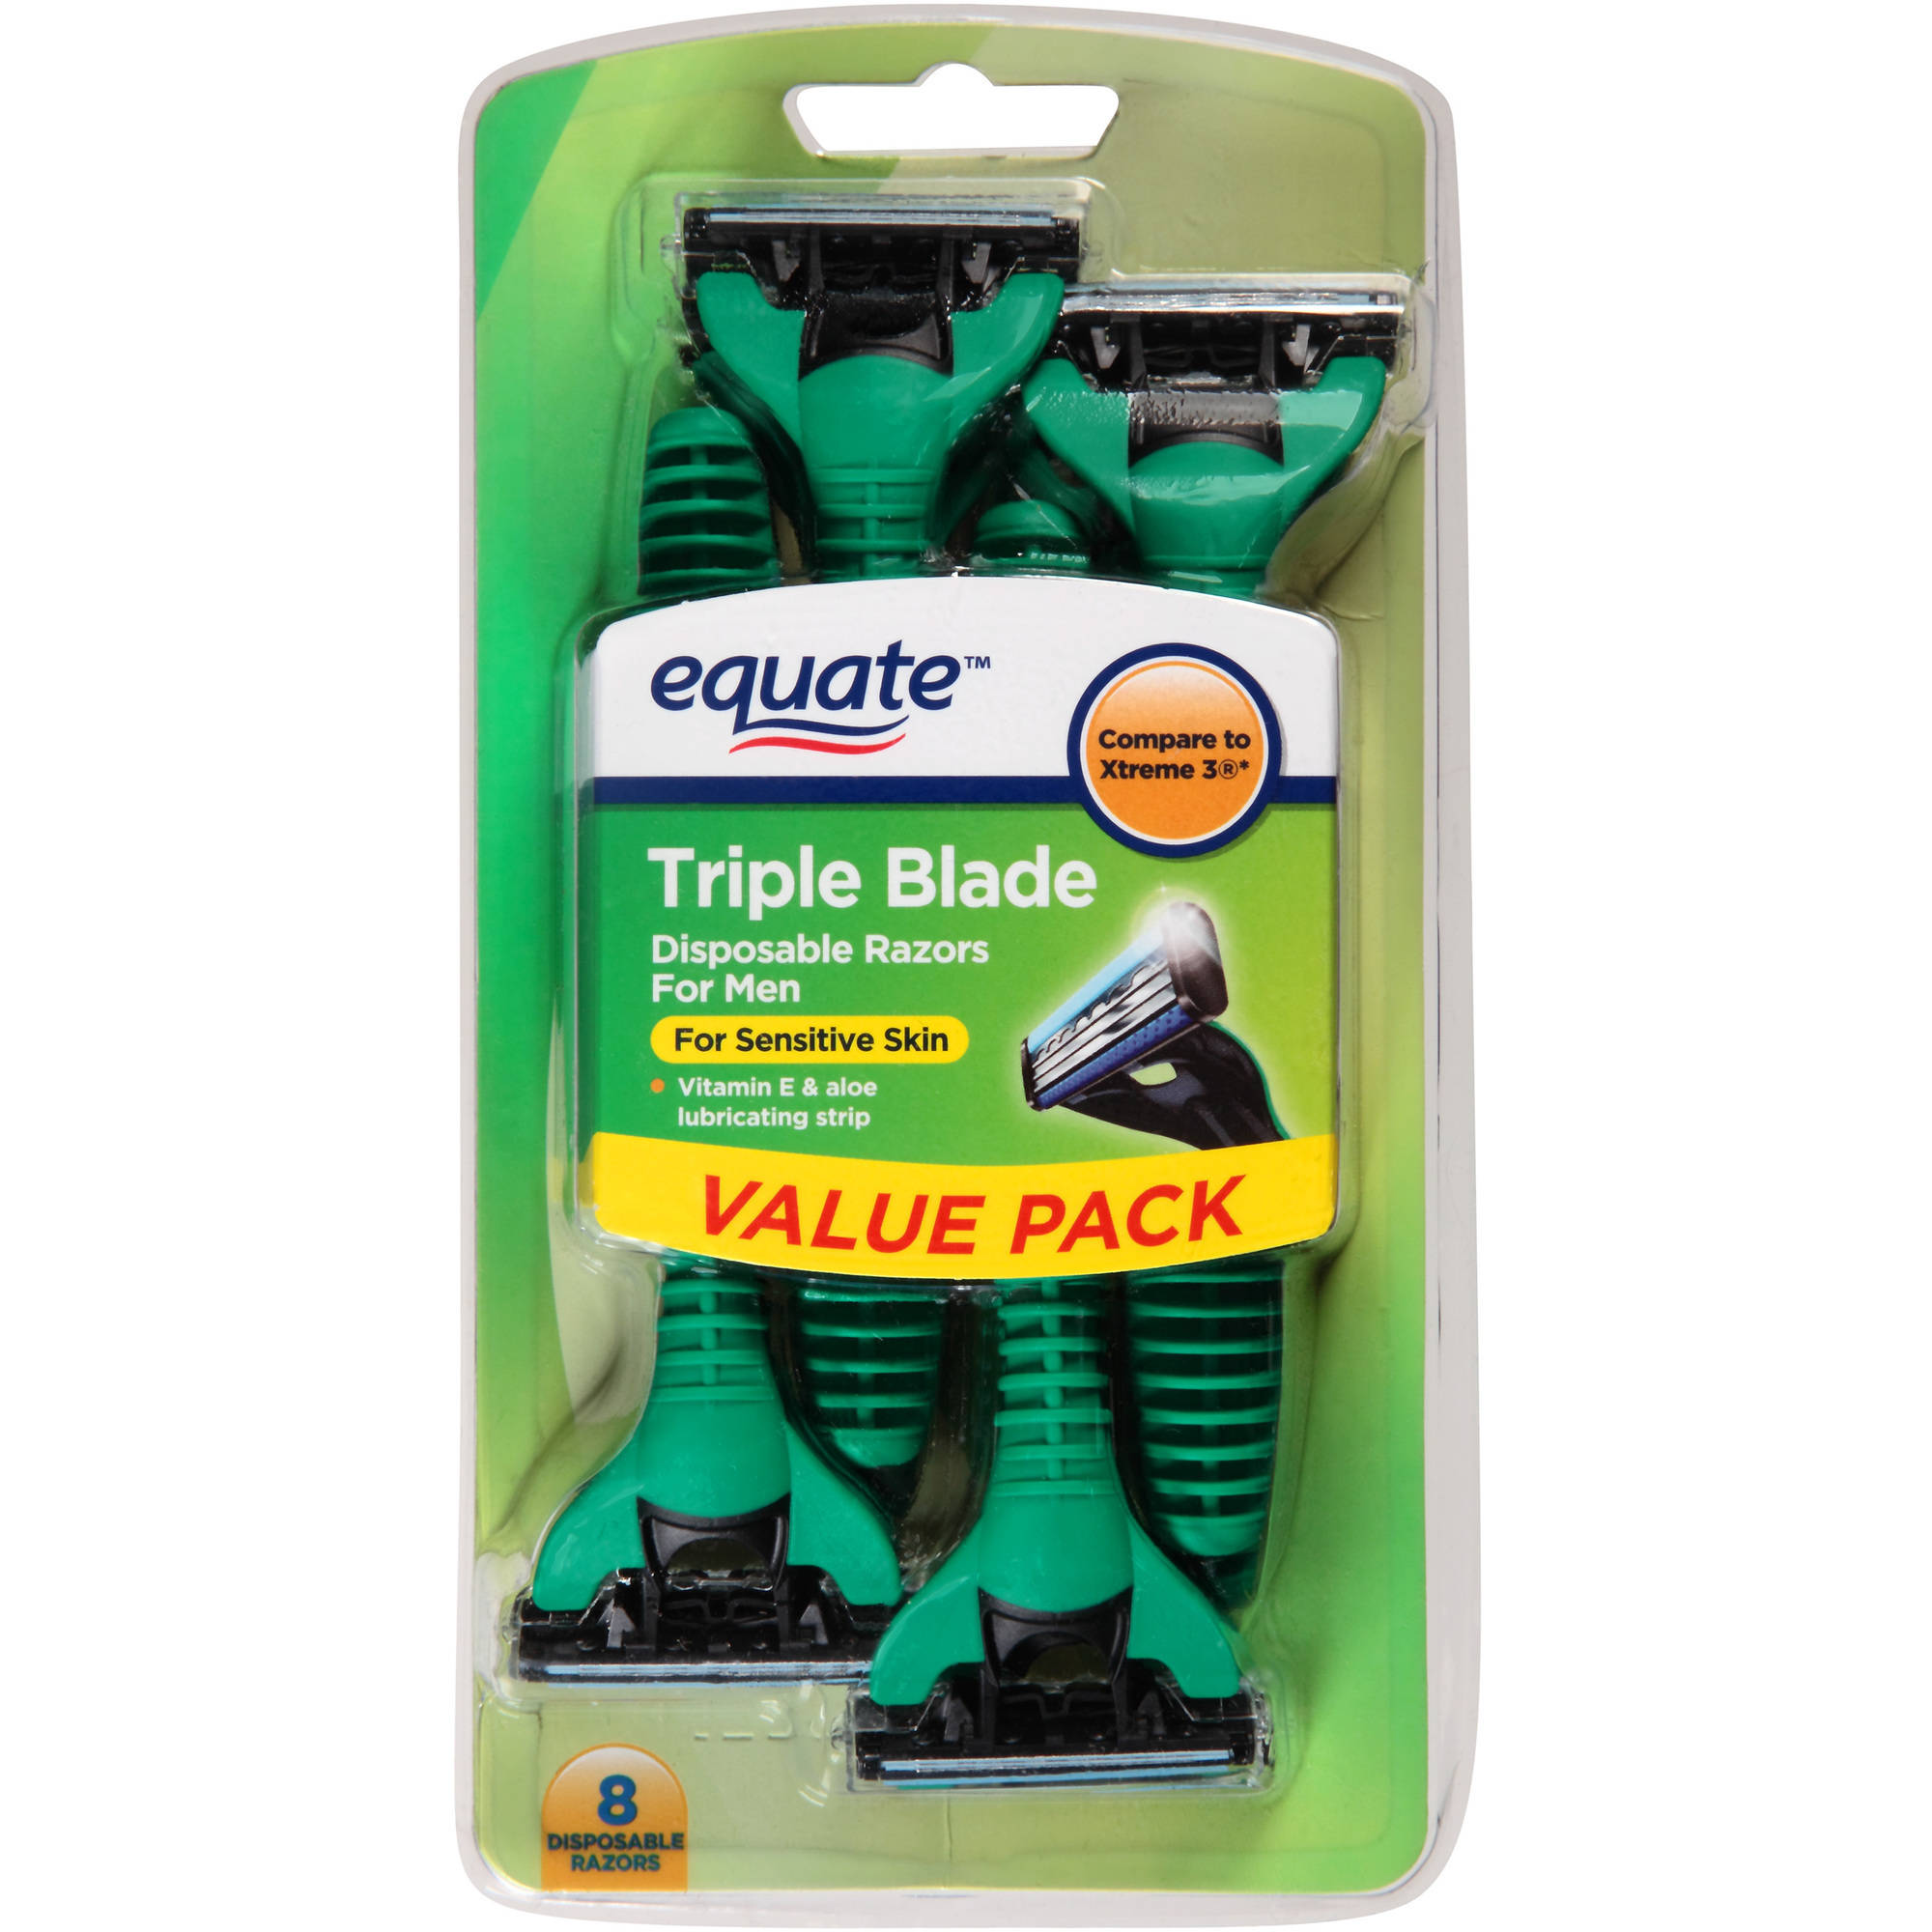 Equate Triple Blade Disposable Razors for Men for Sensitive Skin, 8 count